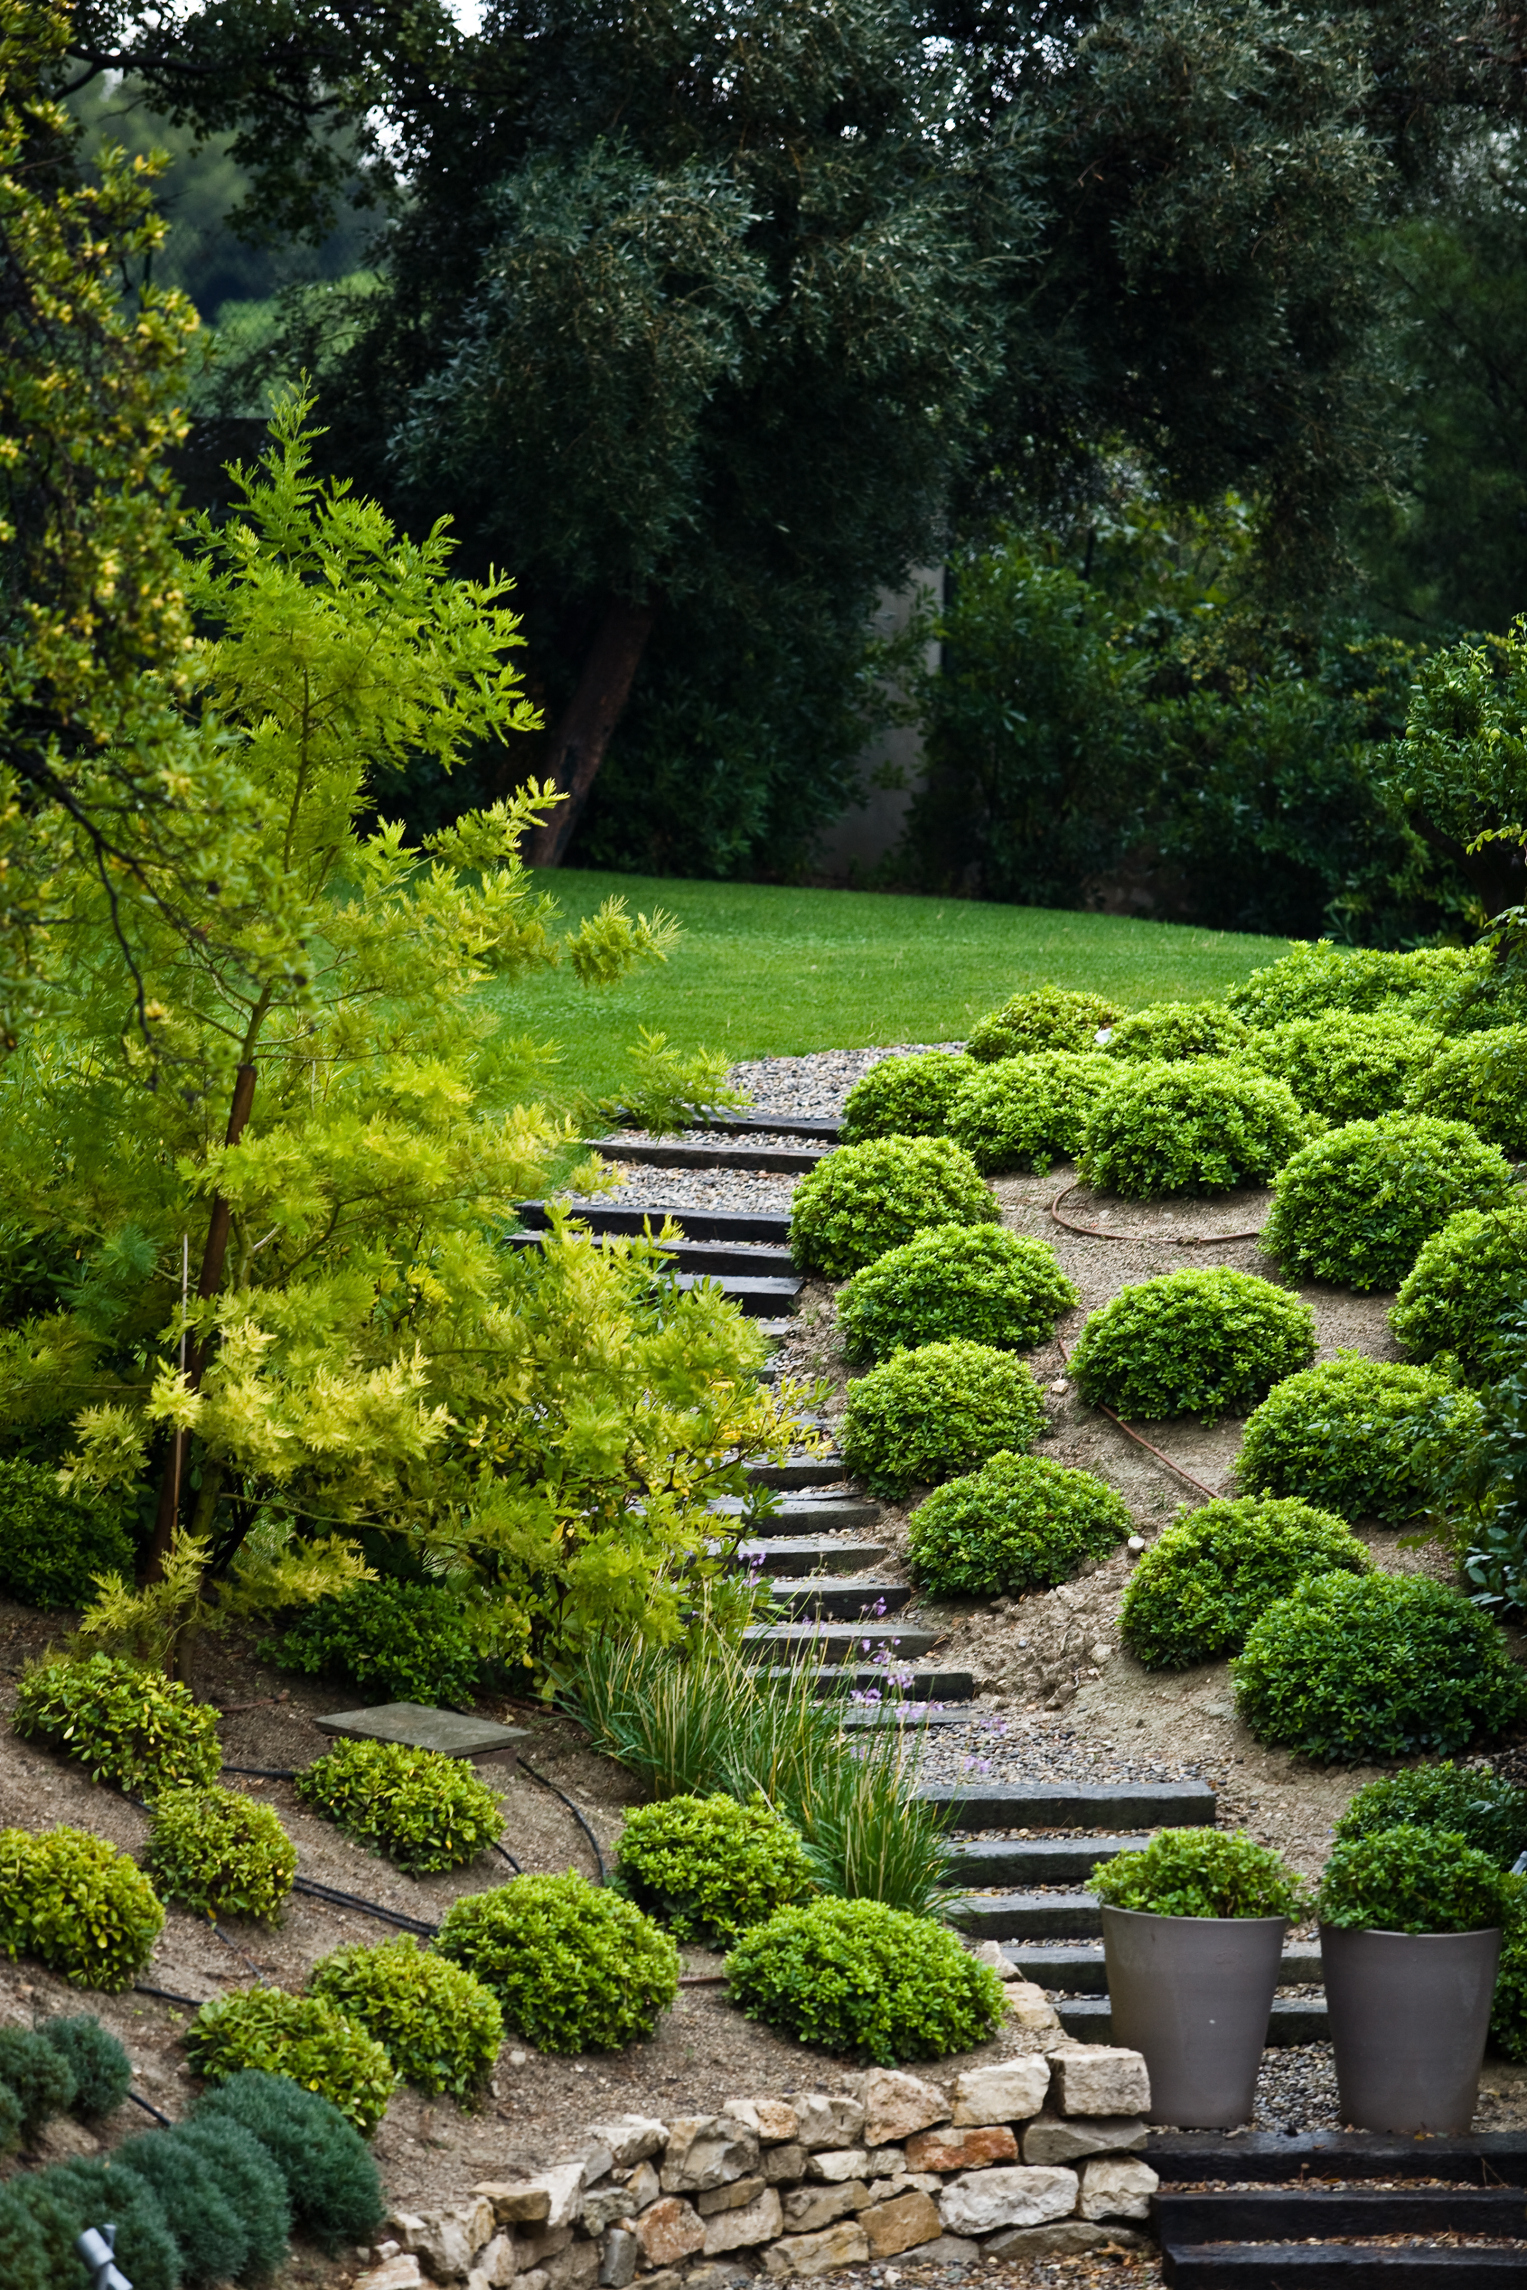 Landscaping Ideas: How to Stabilize a Steep Slope | Home ... on Steep Sloping Garden Ideas id=72303